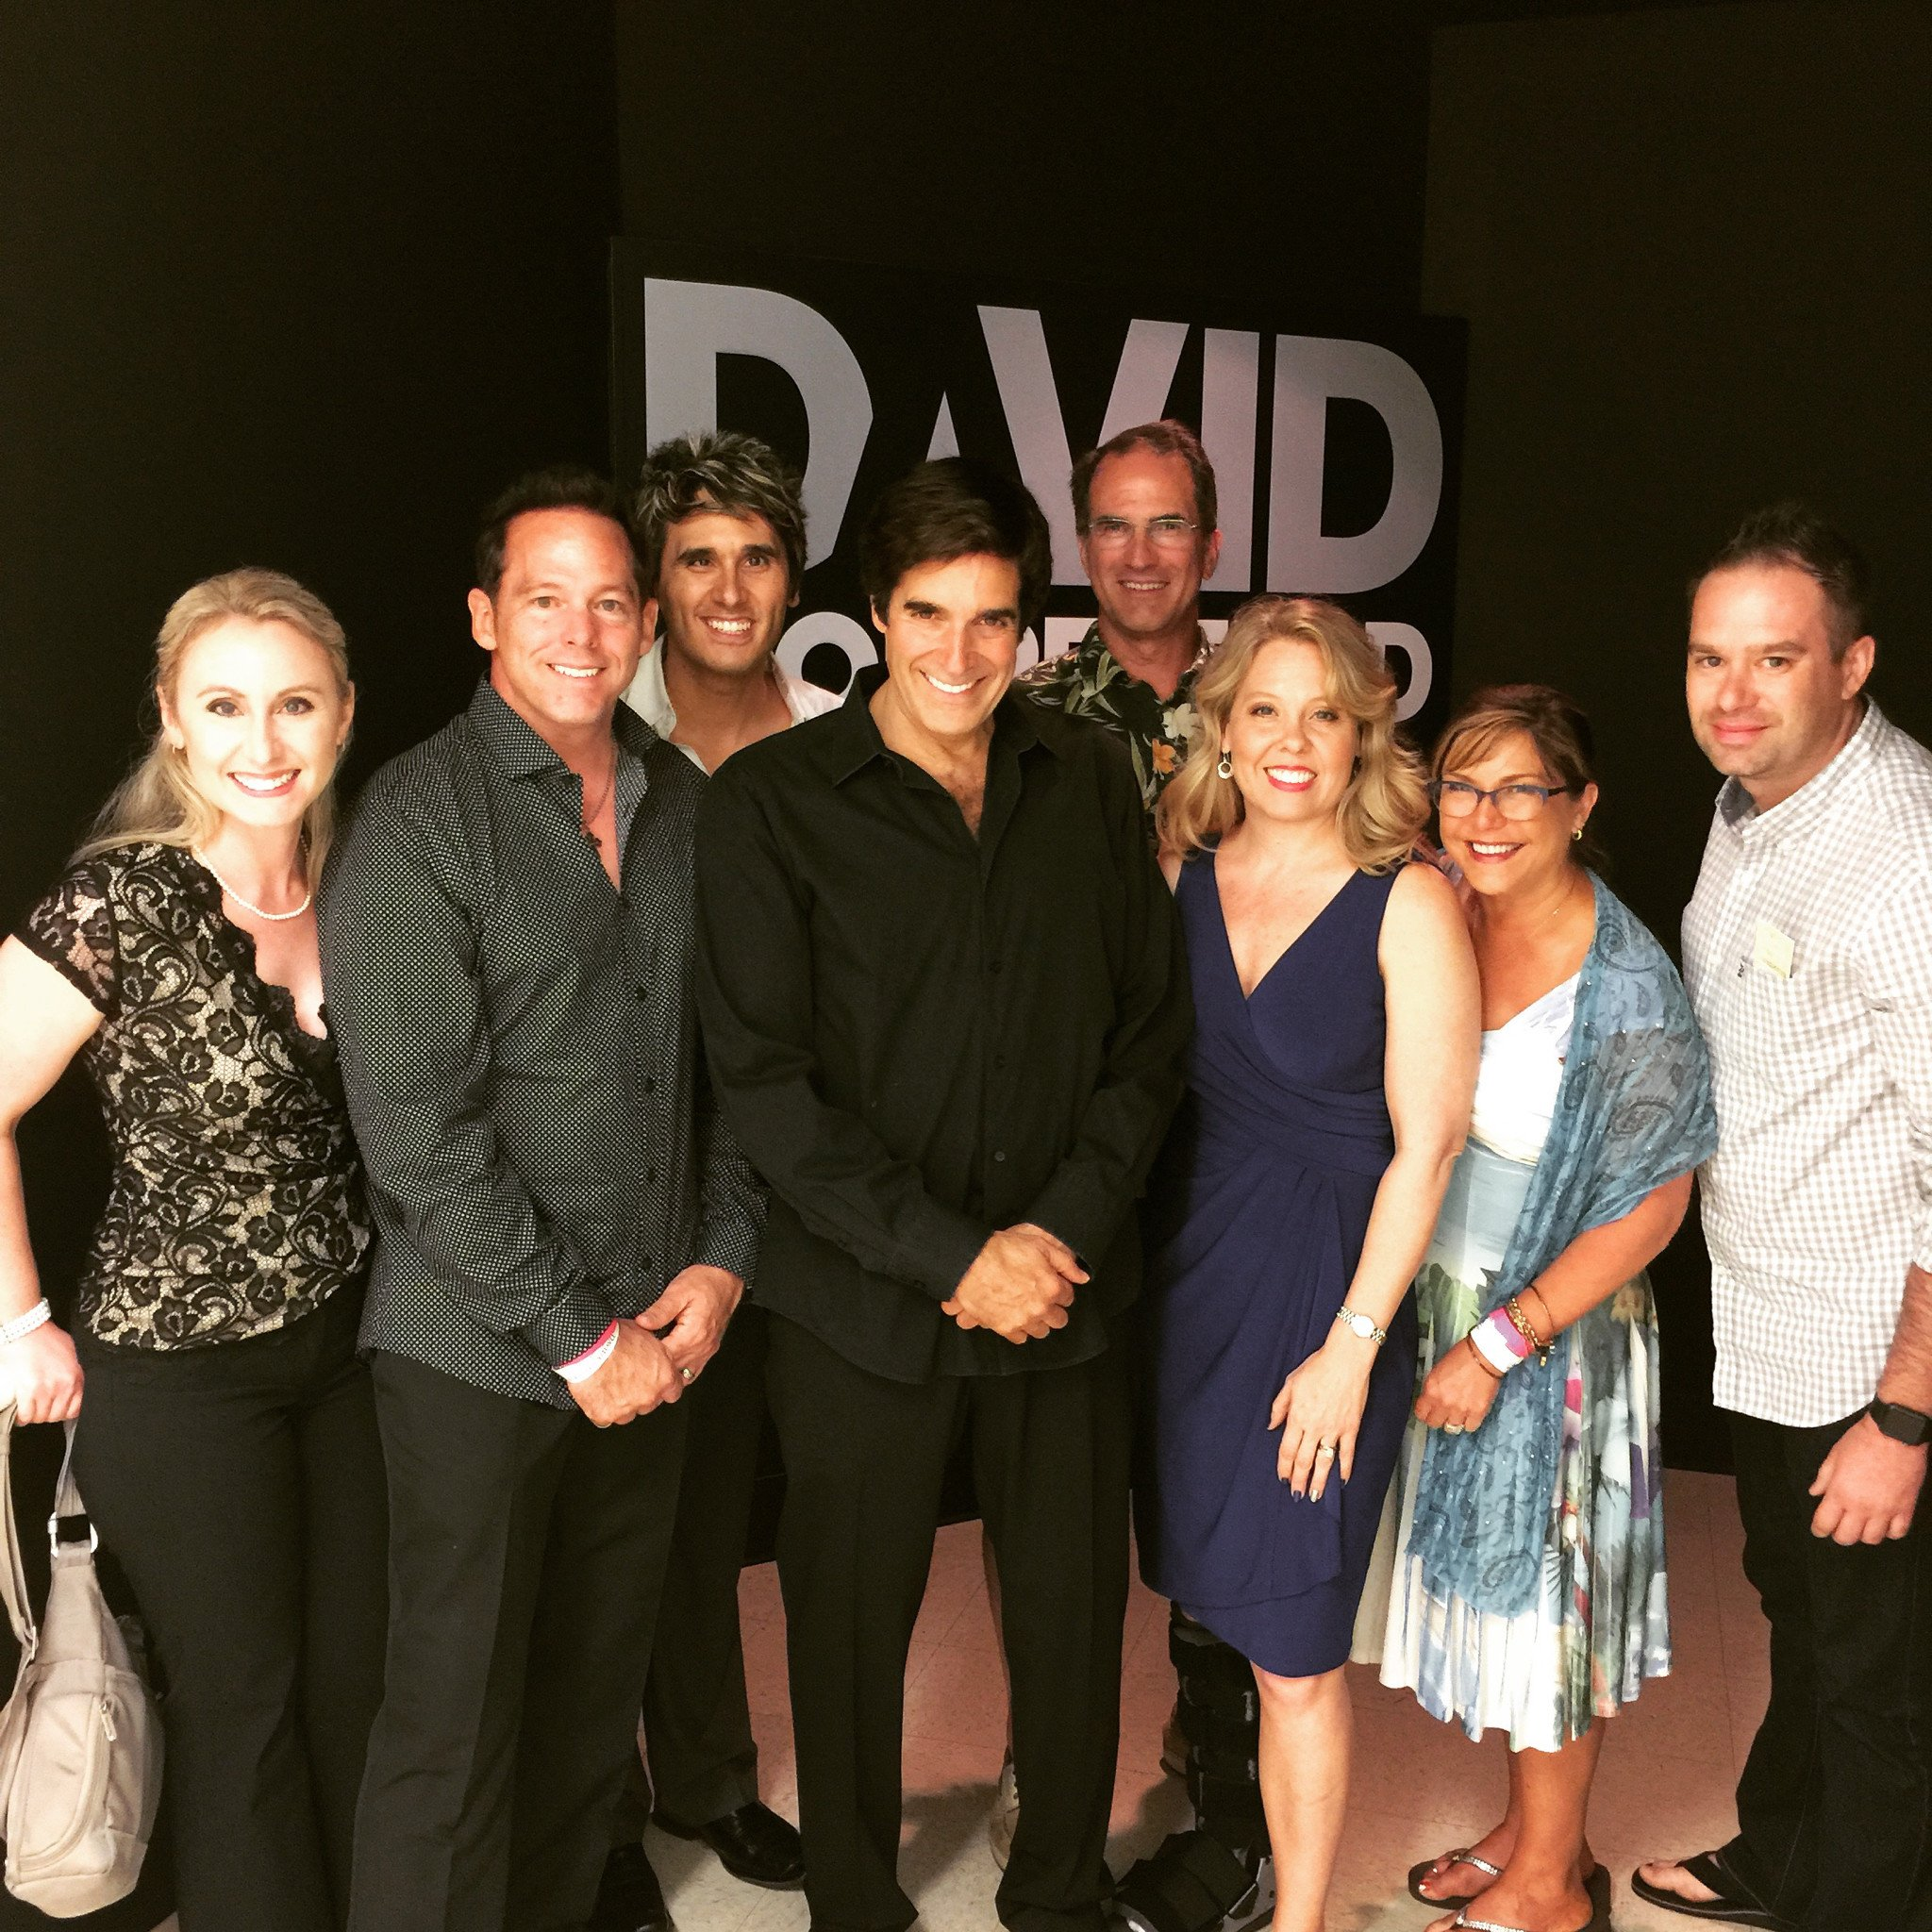 Happy Birthday to one of our magic heroes, Mr. David Copperfield.